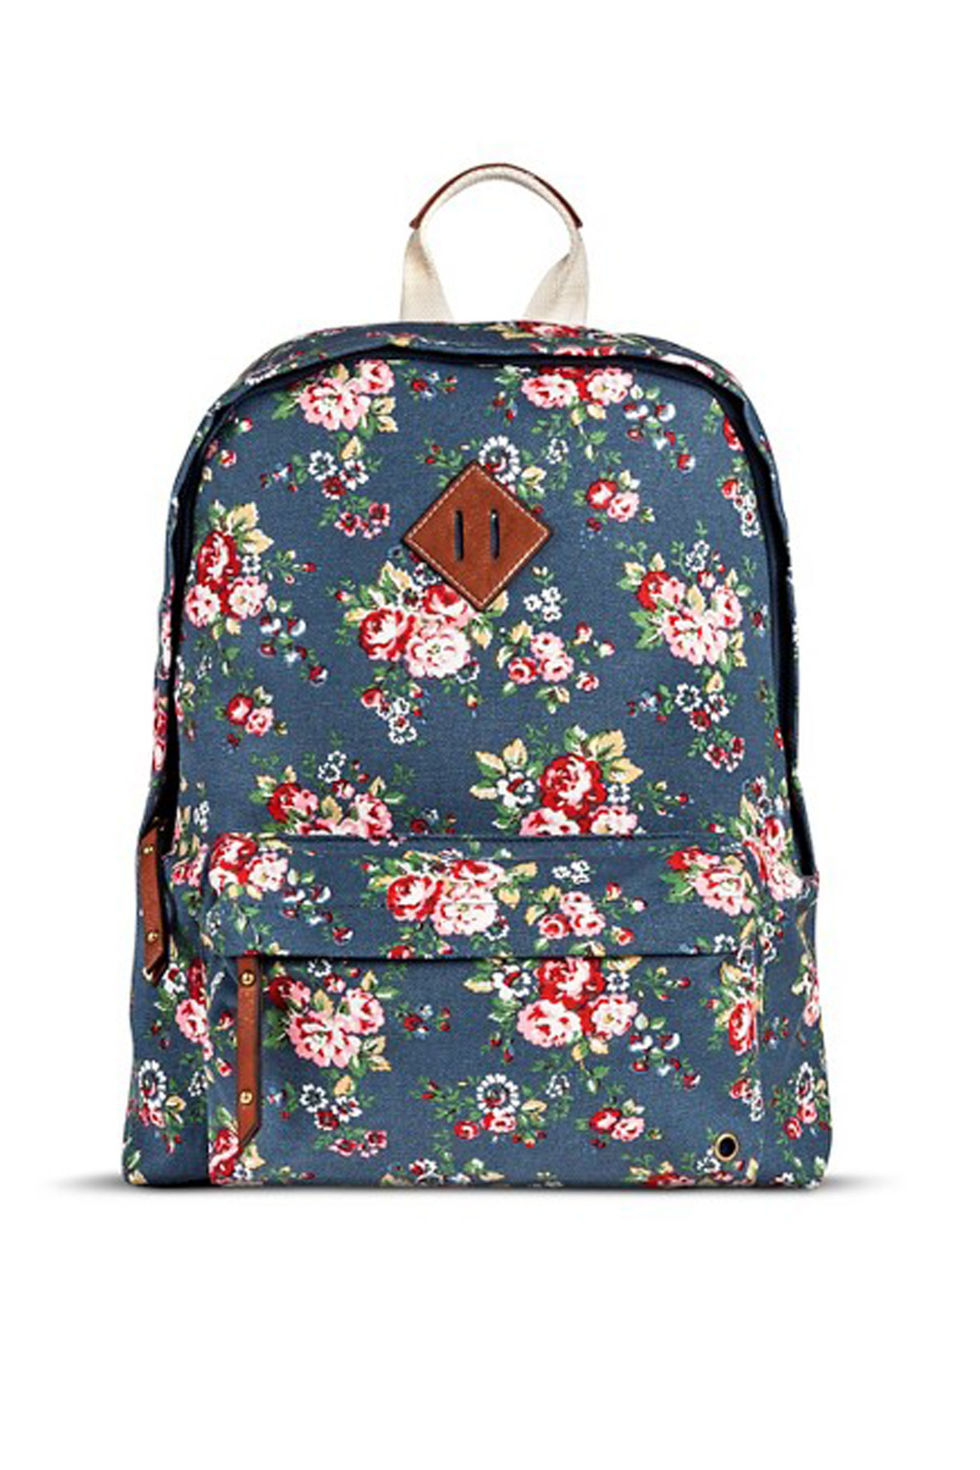 Backpacks For Teens Girls fOh33oGY